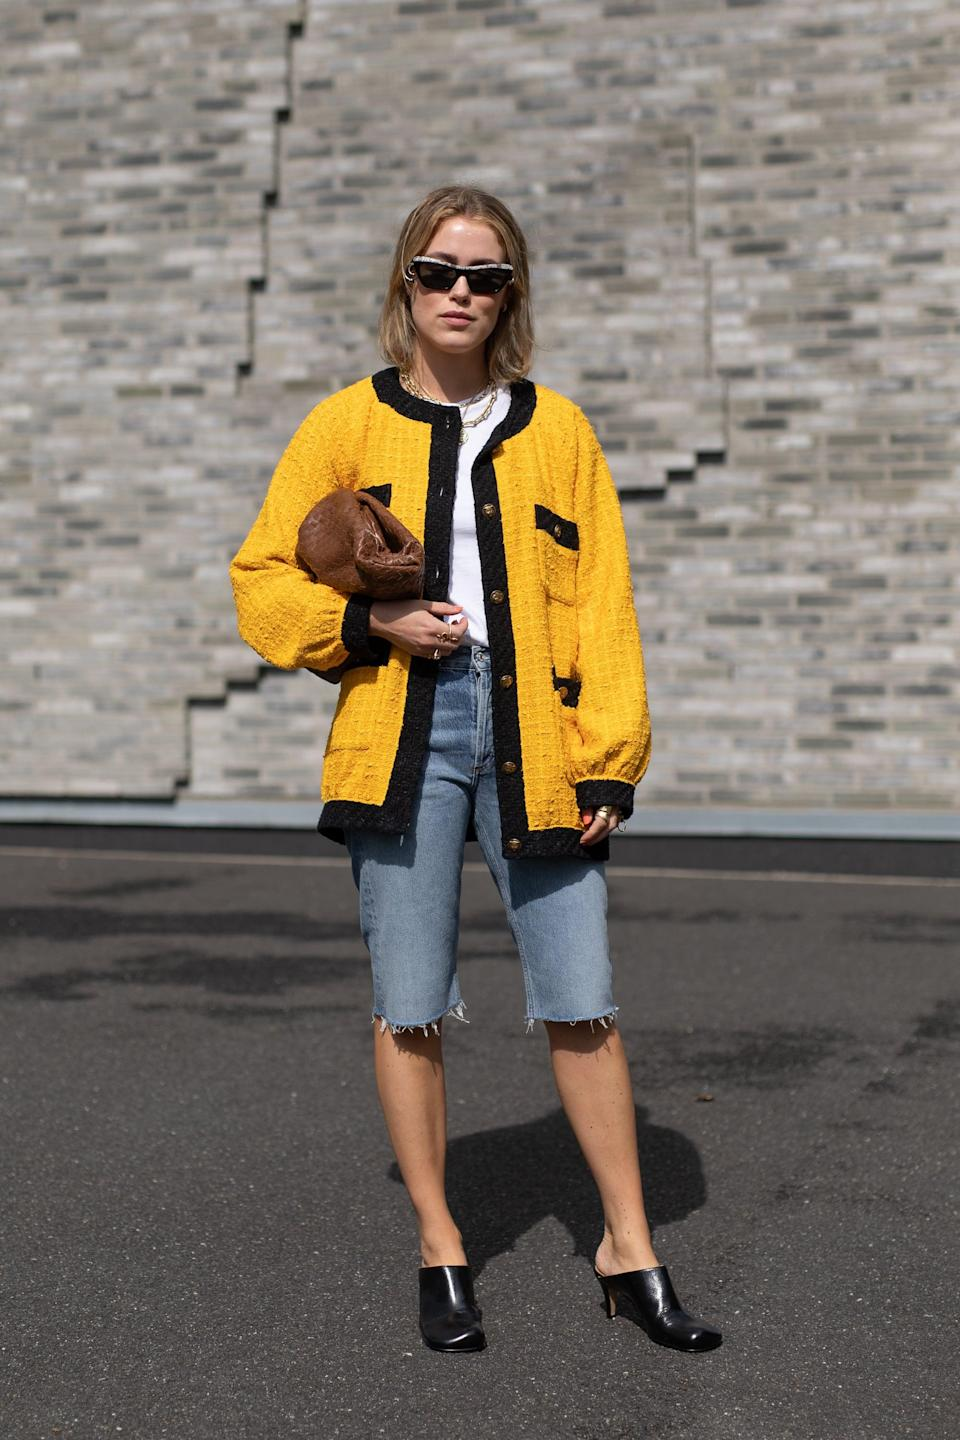 <p>Mid-heeled mules have earned the hearts of most every fashion-girl on, and the love affair is well within reason. After discovering the style as the comfy sister to a pair of ultrahigh, strappy heels, I'm never looking back.</p>